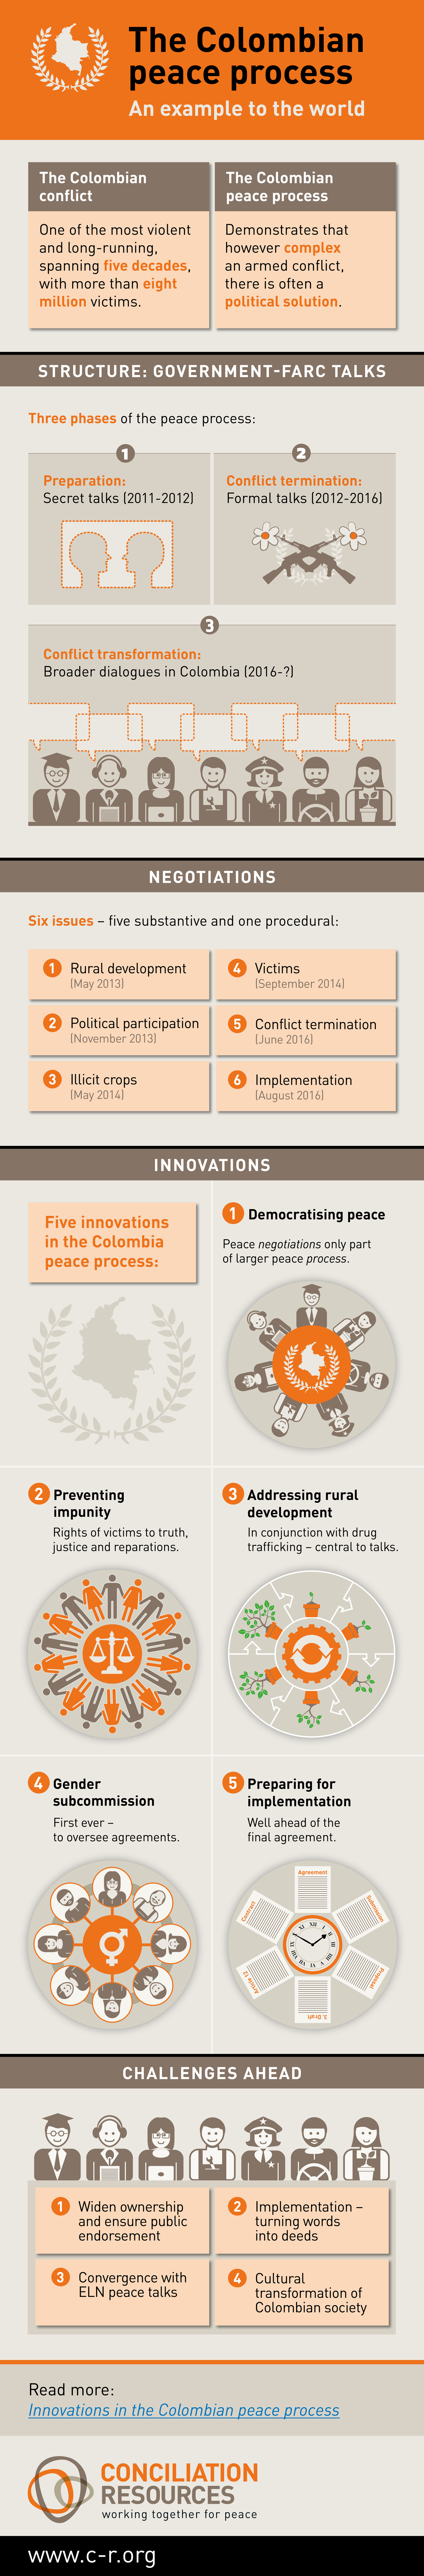 Infographic about Colombian peace process